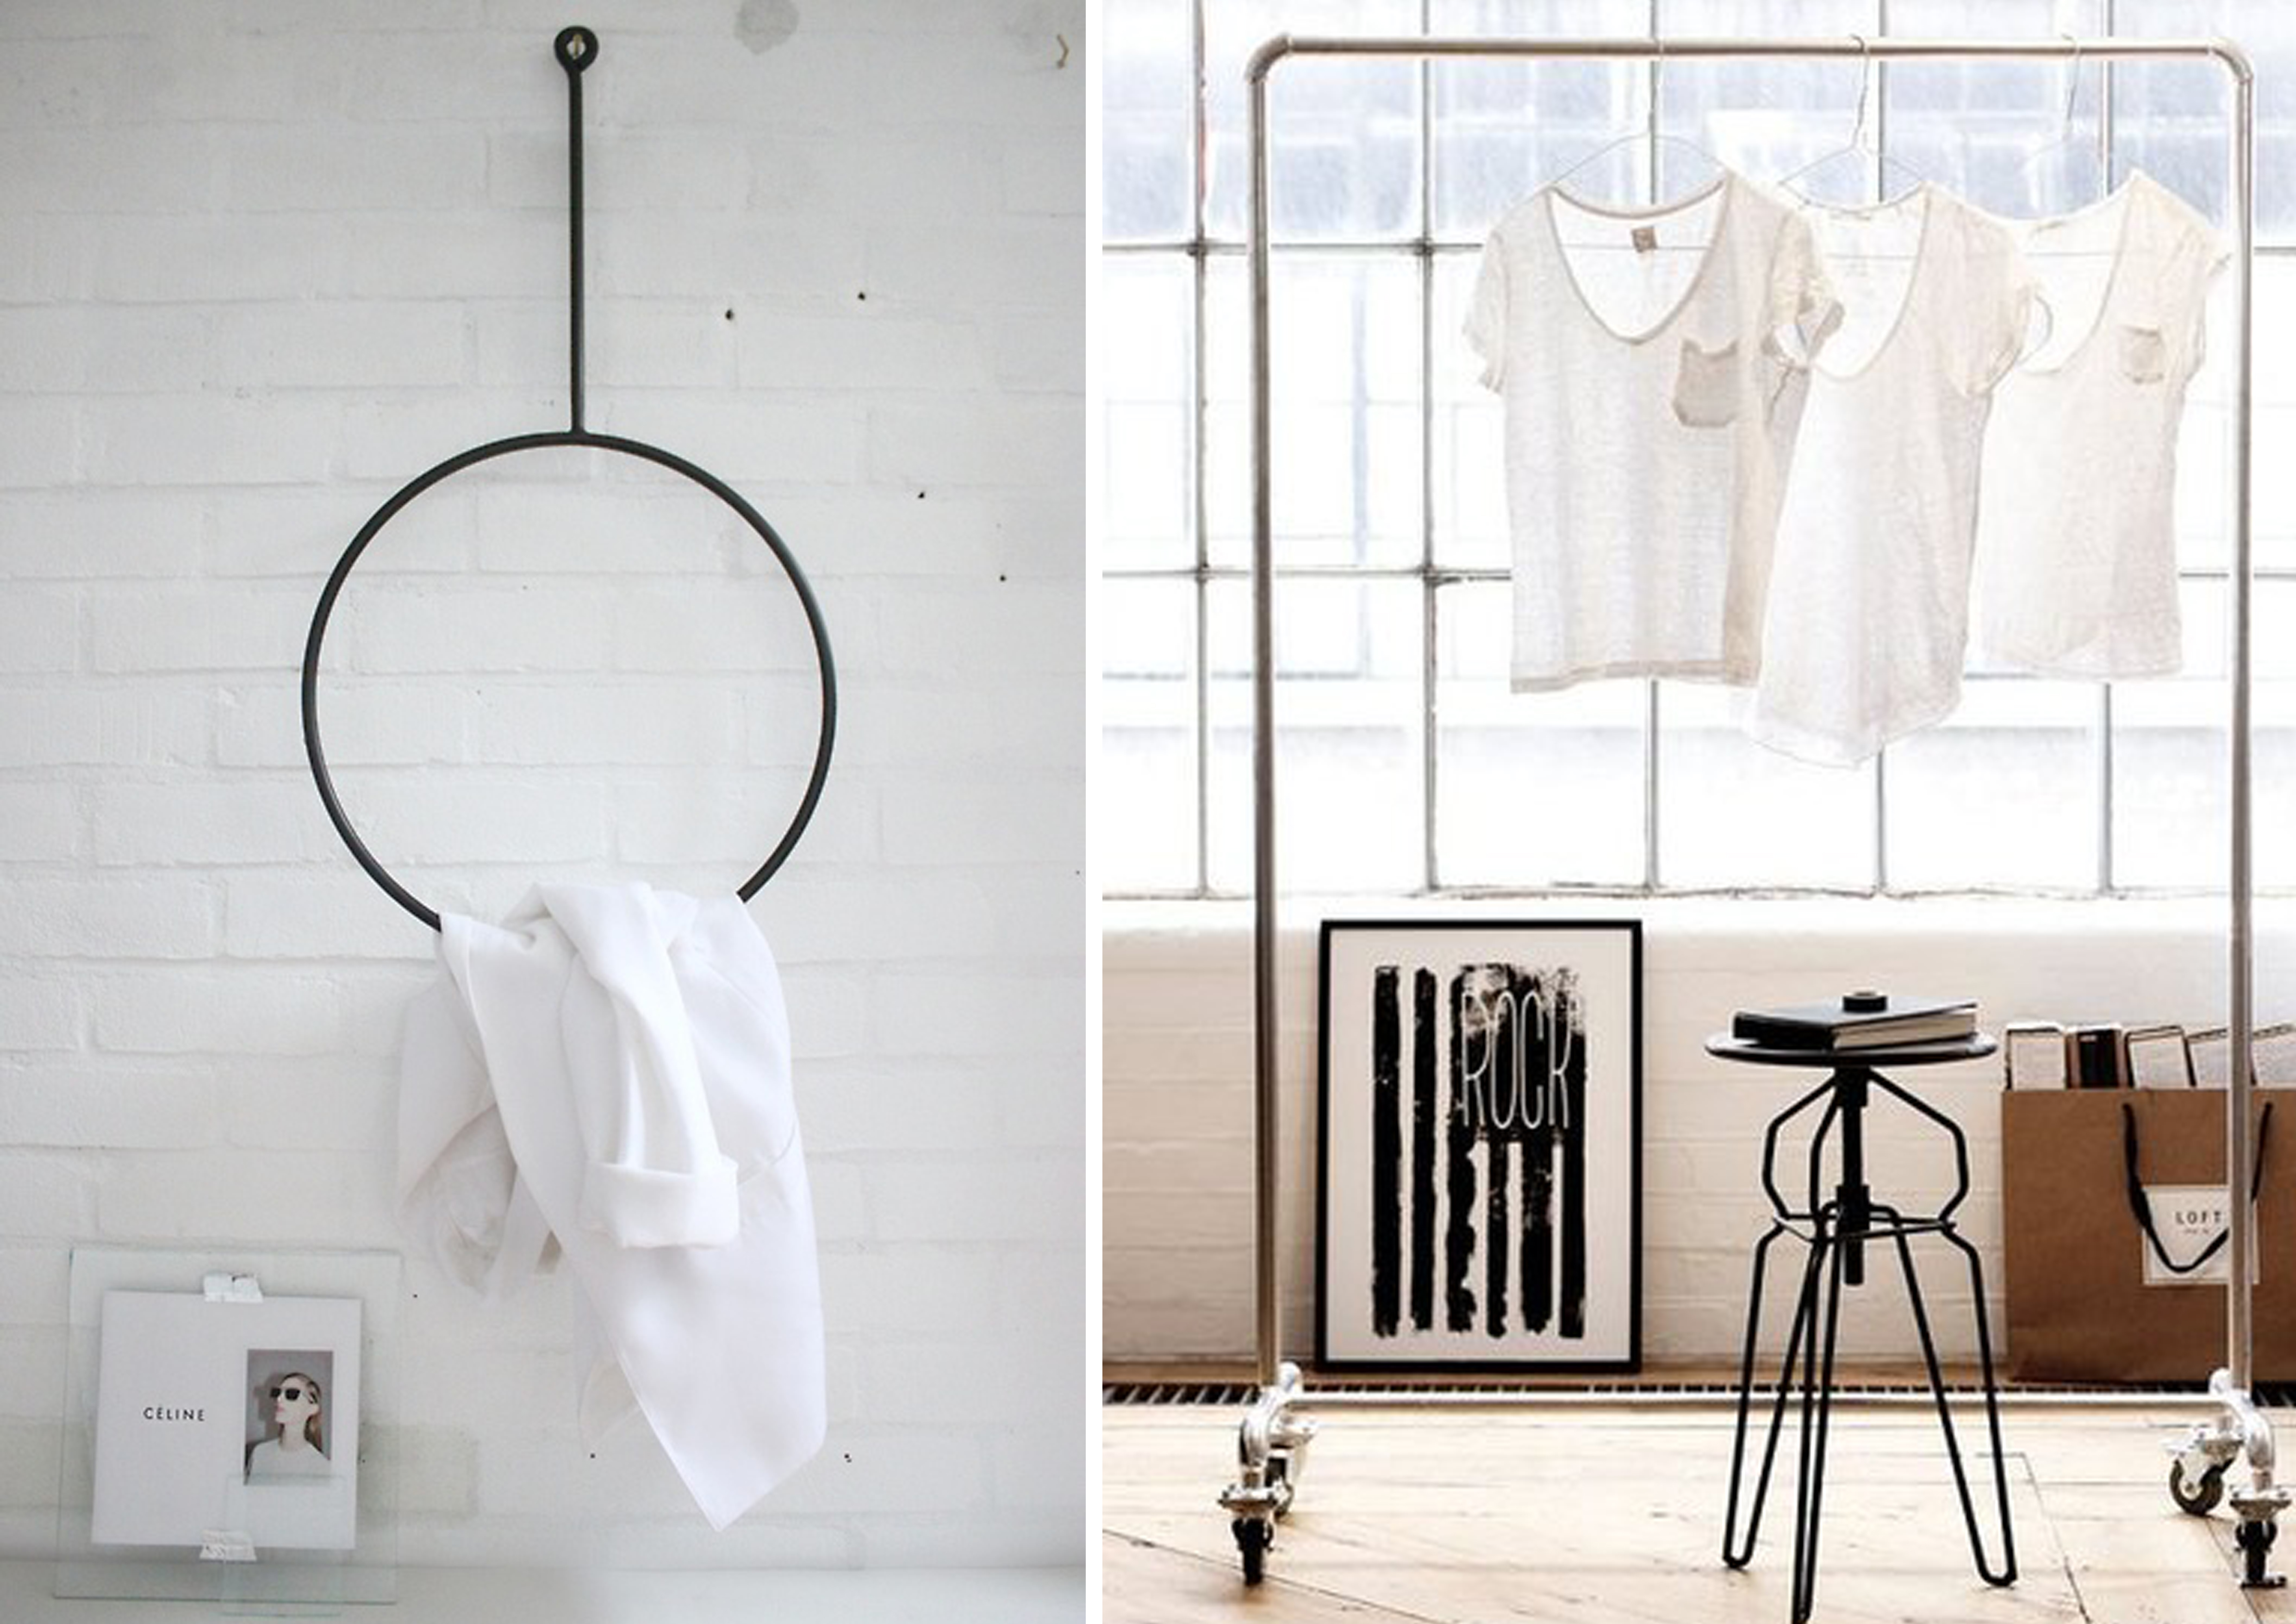 it art inspired wall hacks walls ideas decorating decor vintage wedding tumblr cute pinterest misslizheart youtube home diy yourself rack rooms affordable bedroom projects cheap makeover for room clothes small